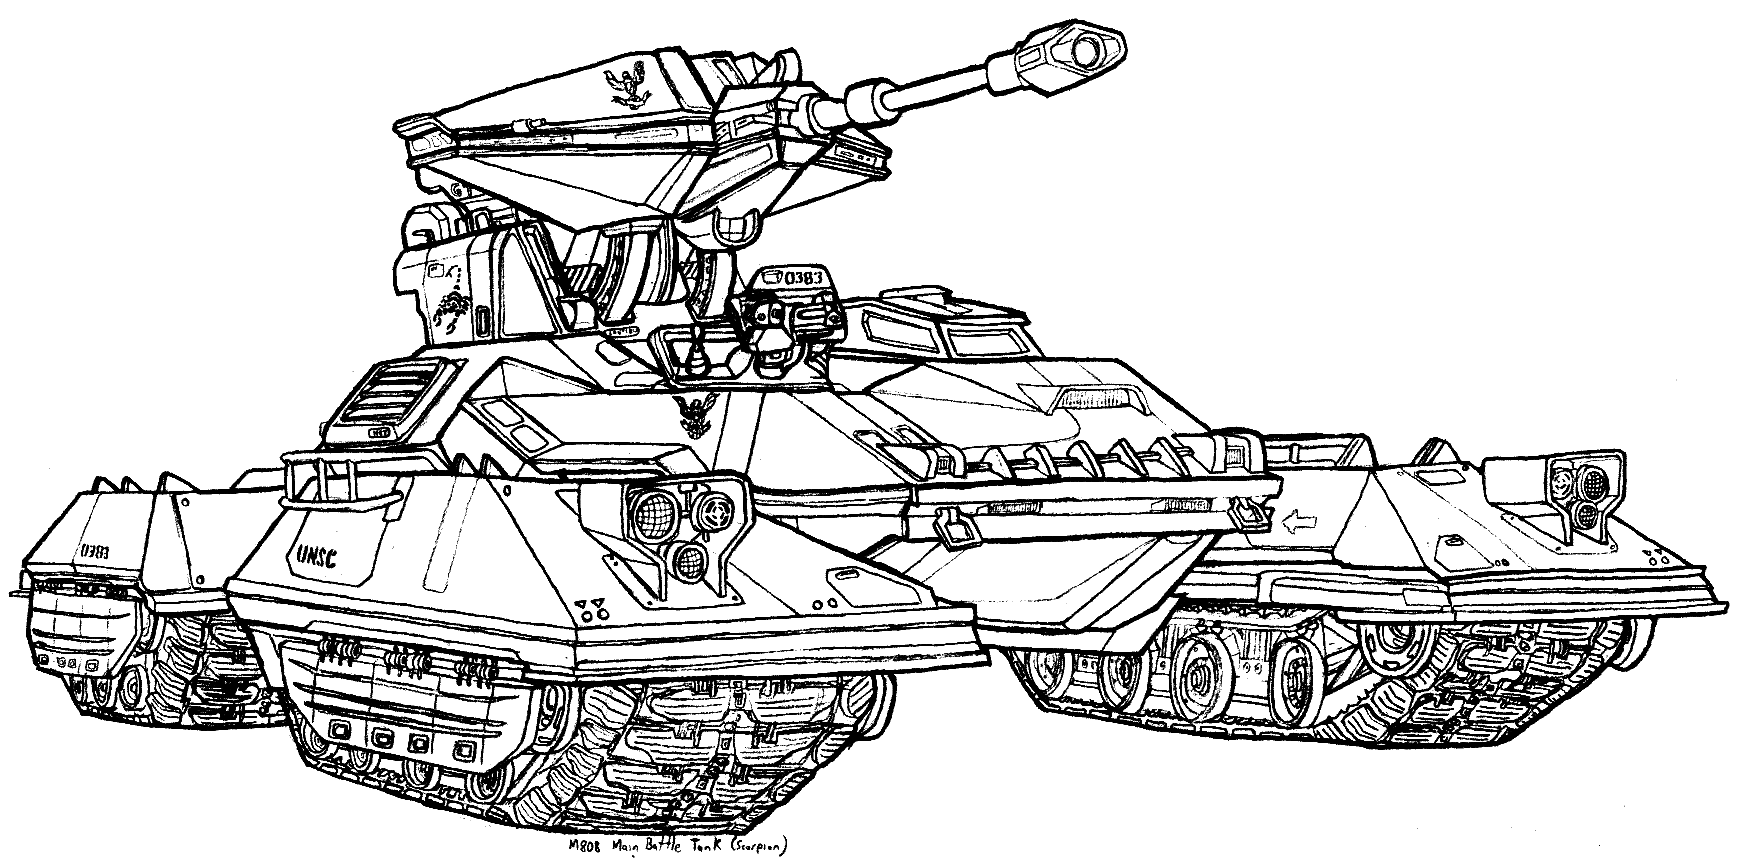 M808 main battle tank scorpion by dandelo1 on deviantart for Tank coloring page